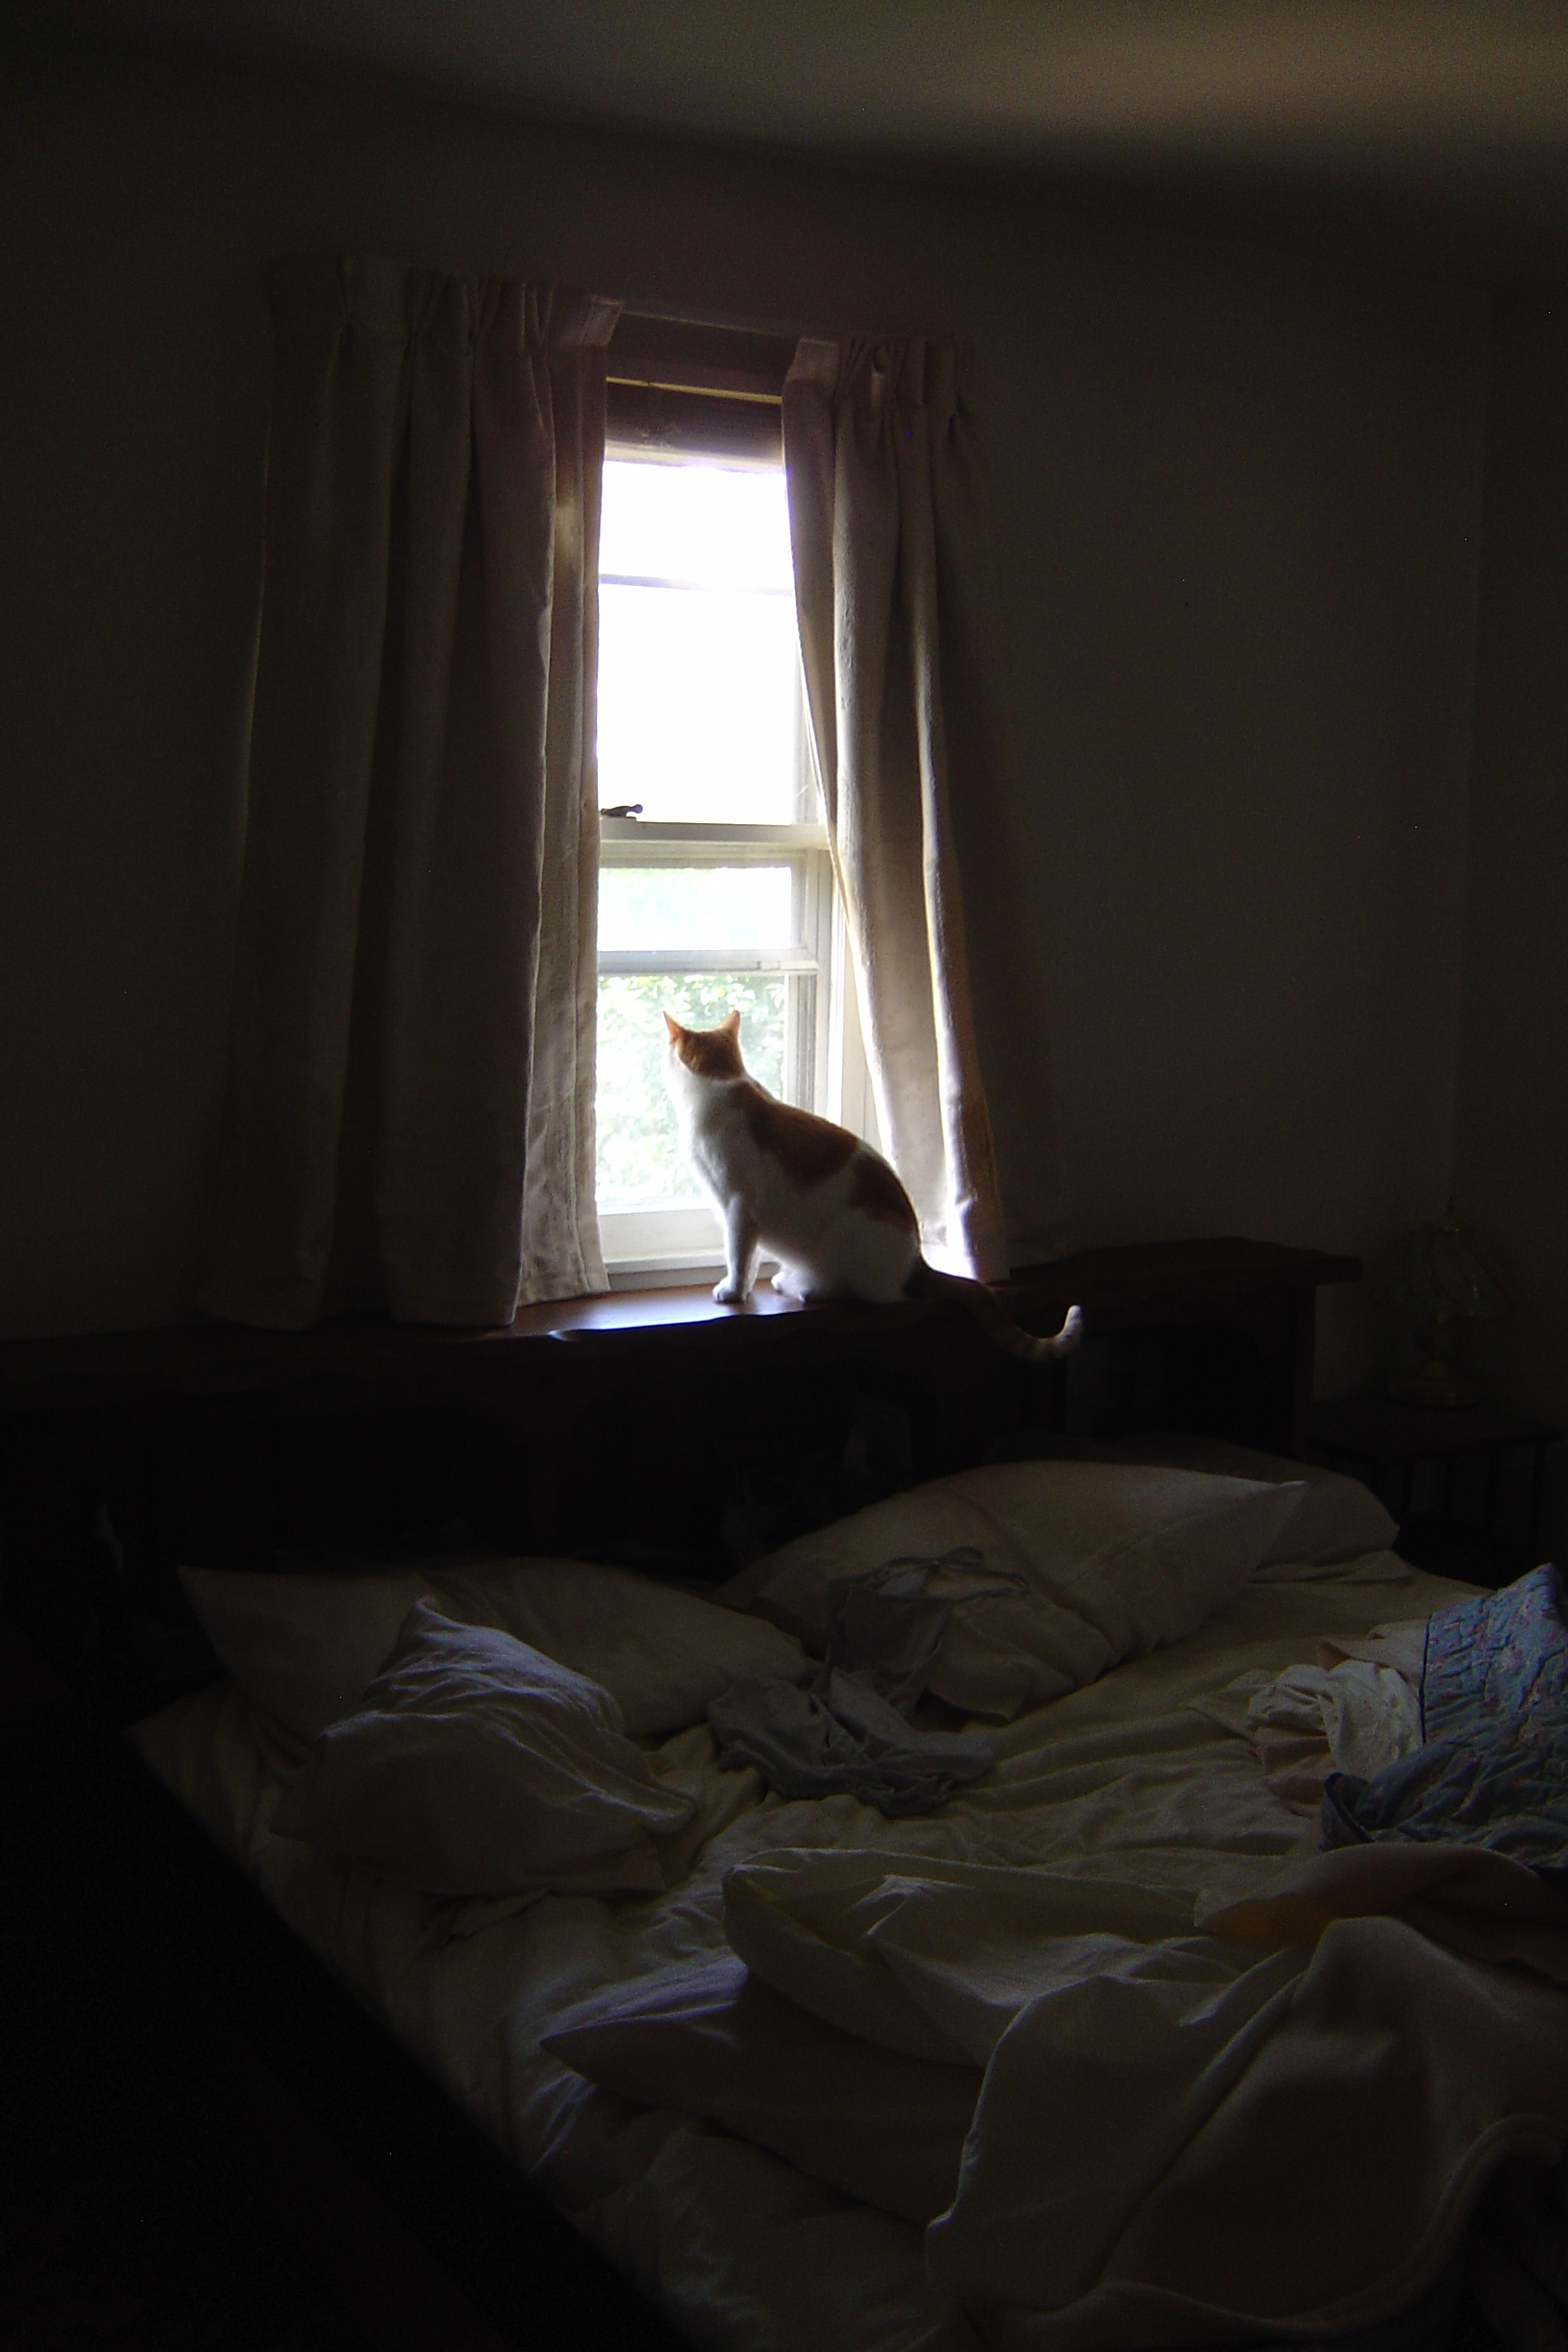 Cat In Bedroom Window